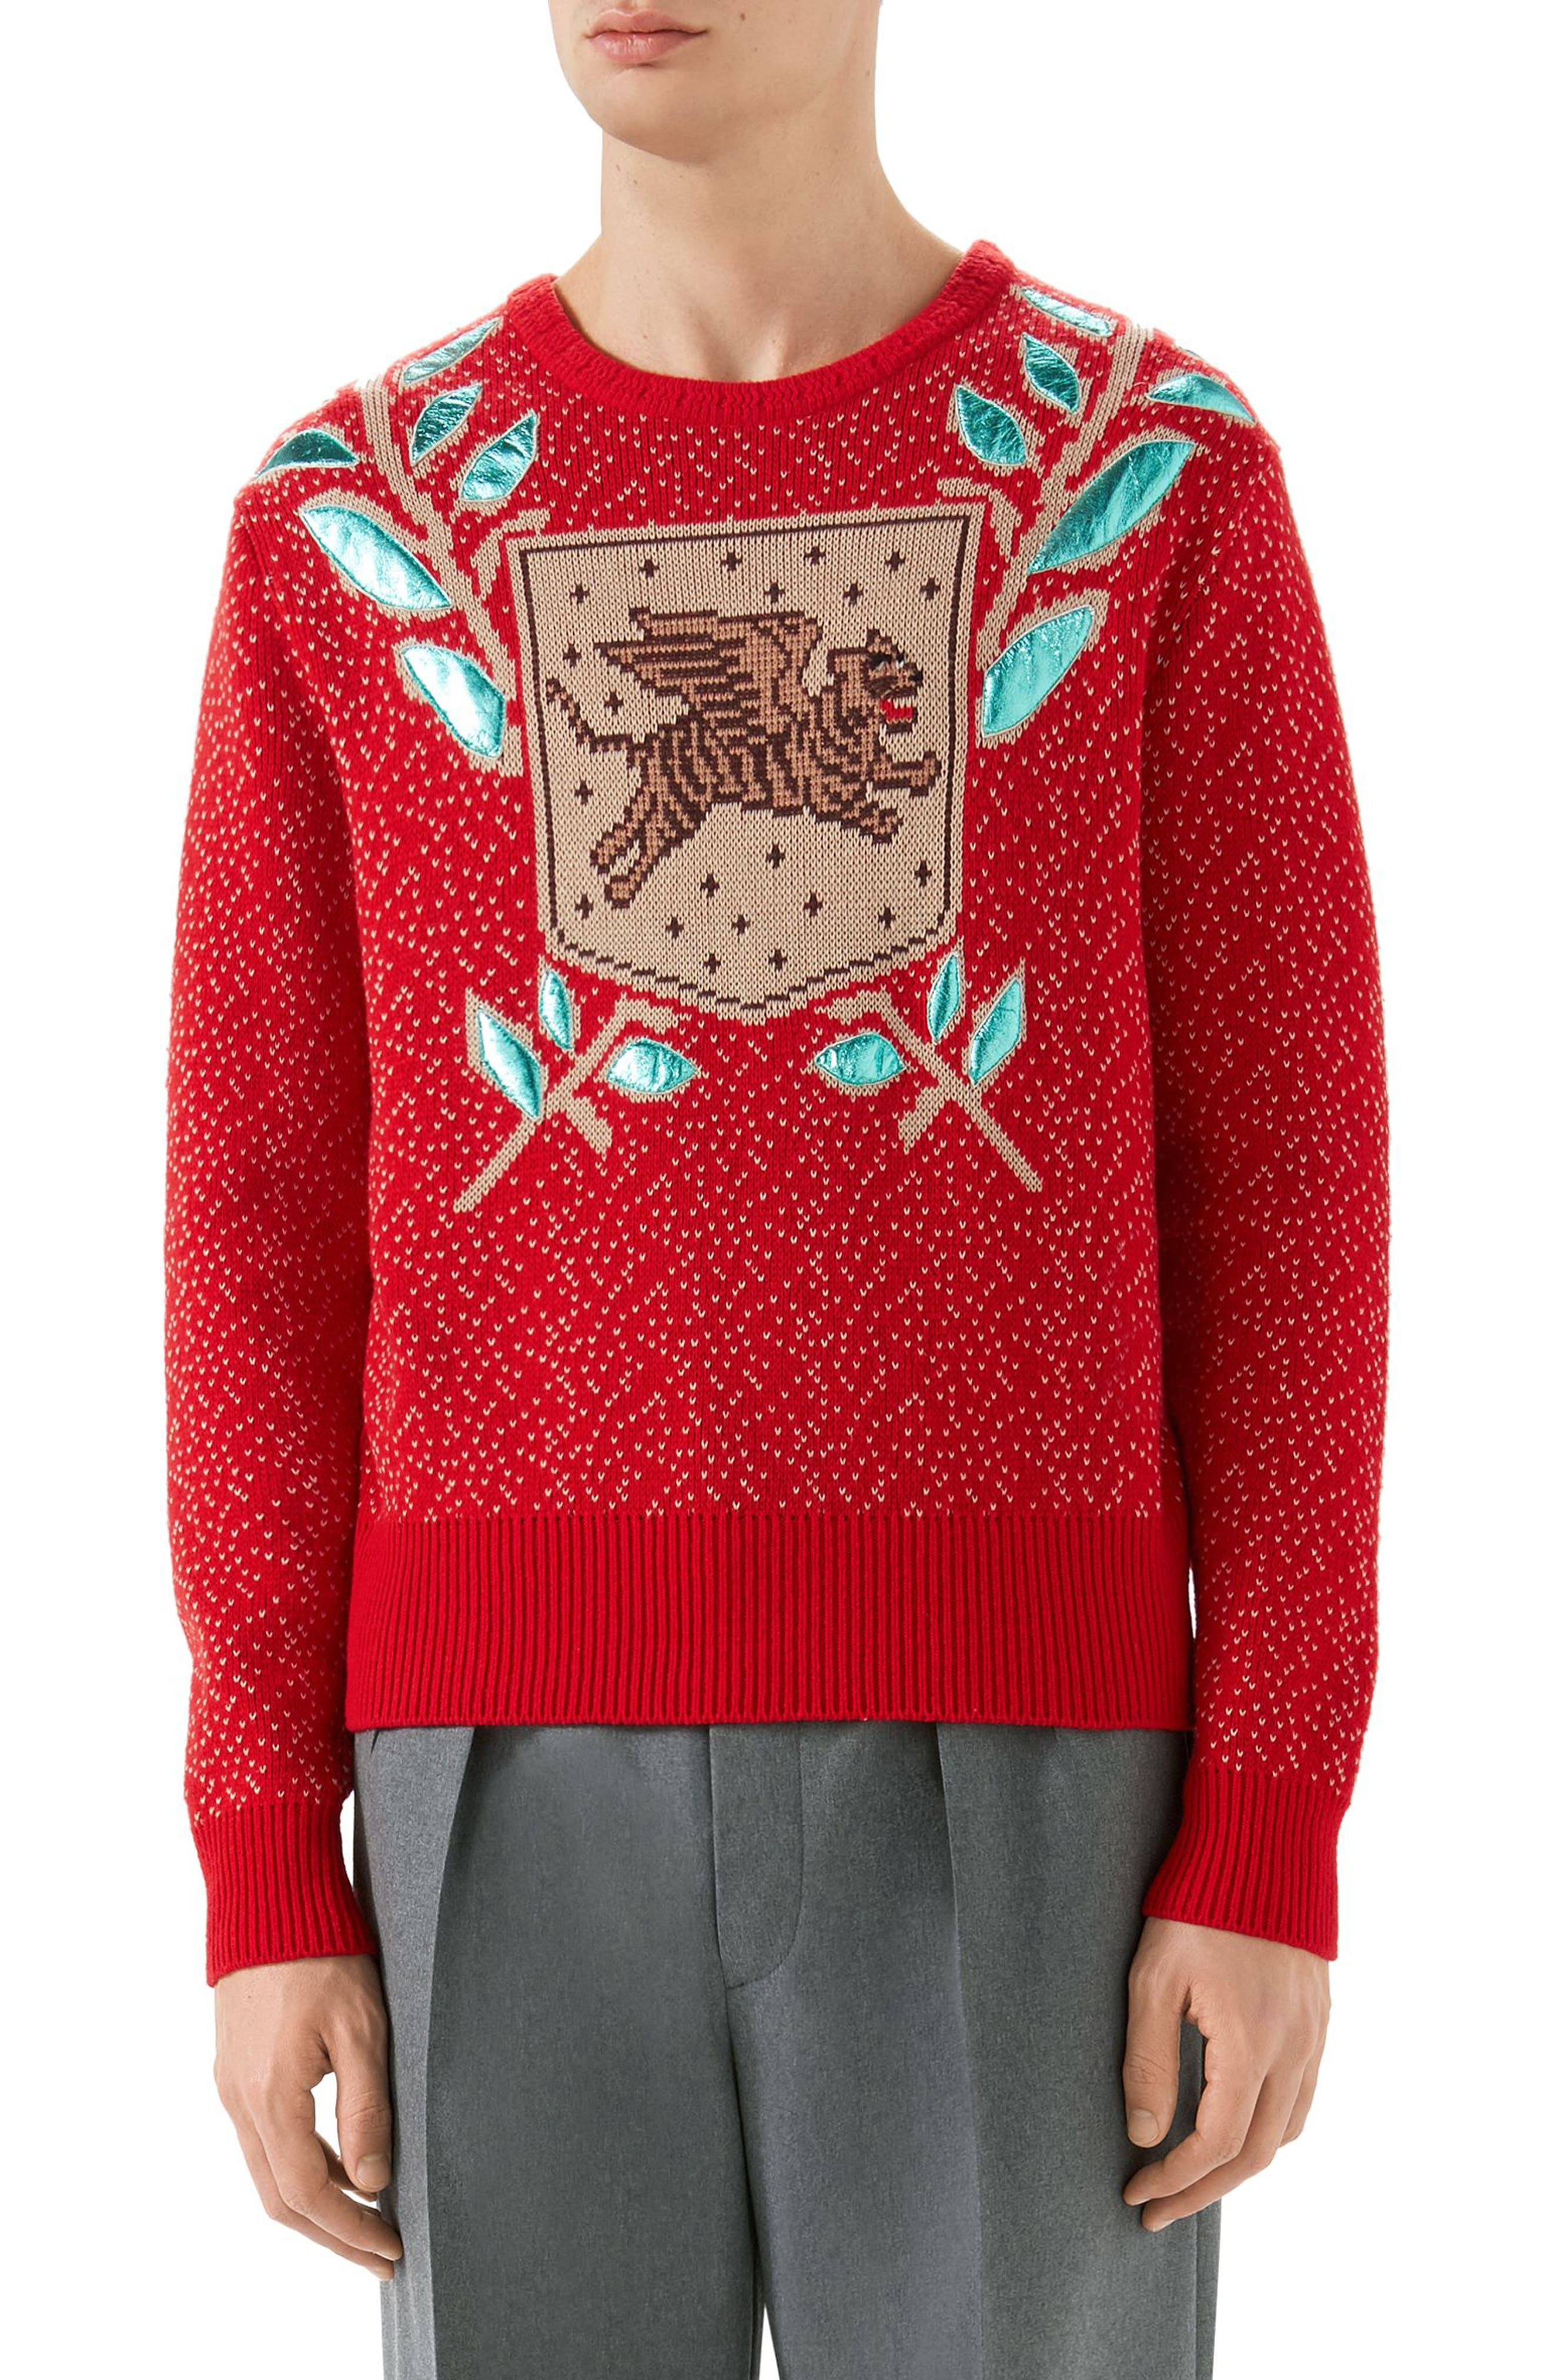 Jacquard Wool Blend Sweater,                             Main thumbnail 1, color,                             LIVE RED